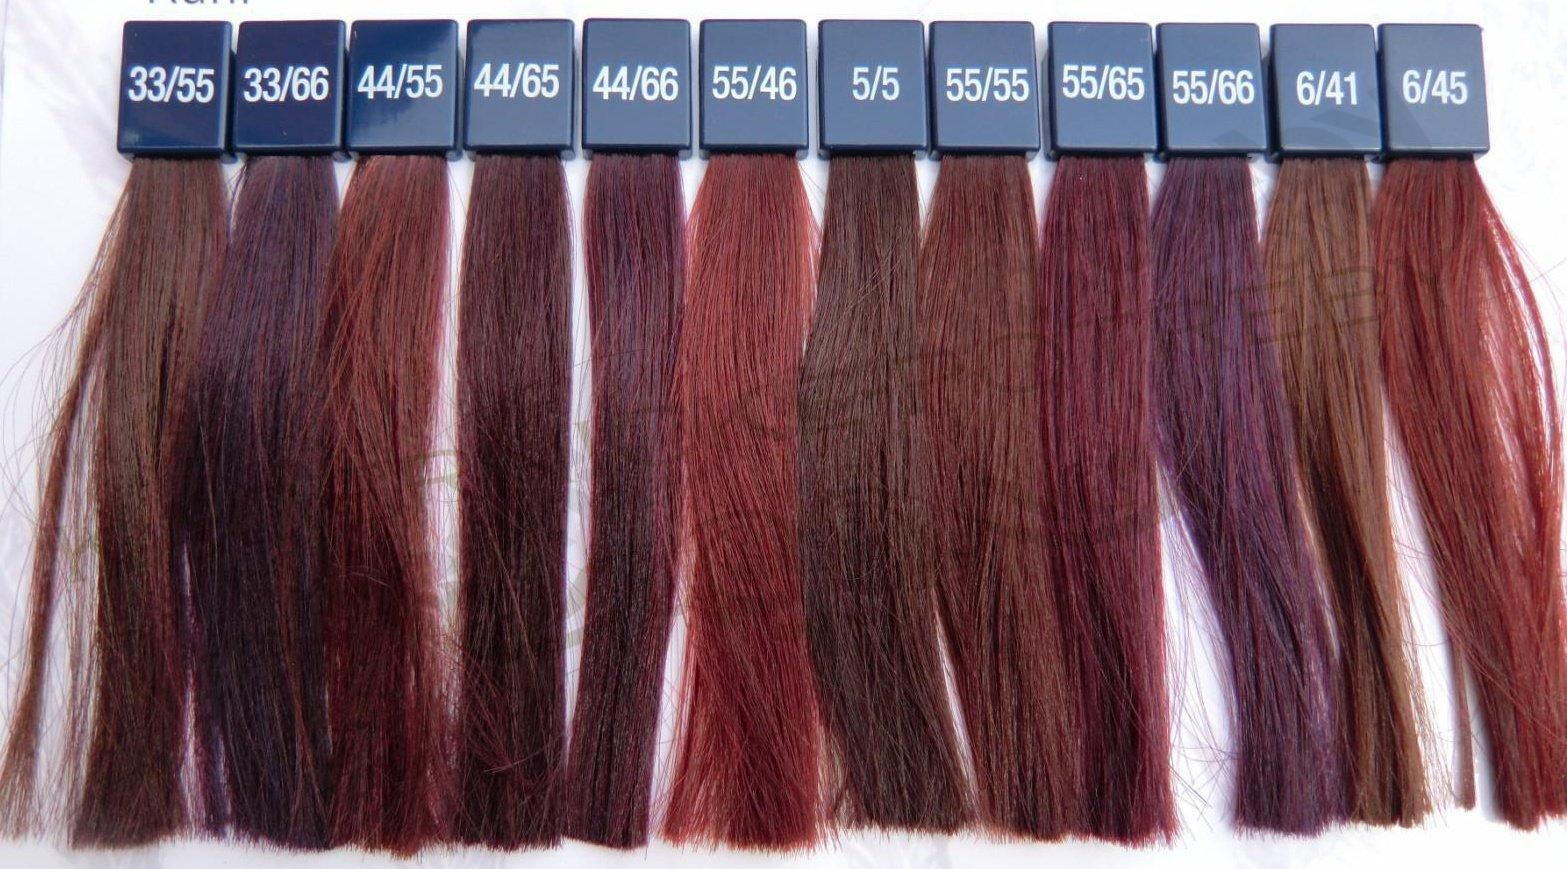 Wella koleston perfect vibrant redsg also color light intense red violet yahoo search results rh pinterest